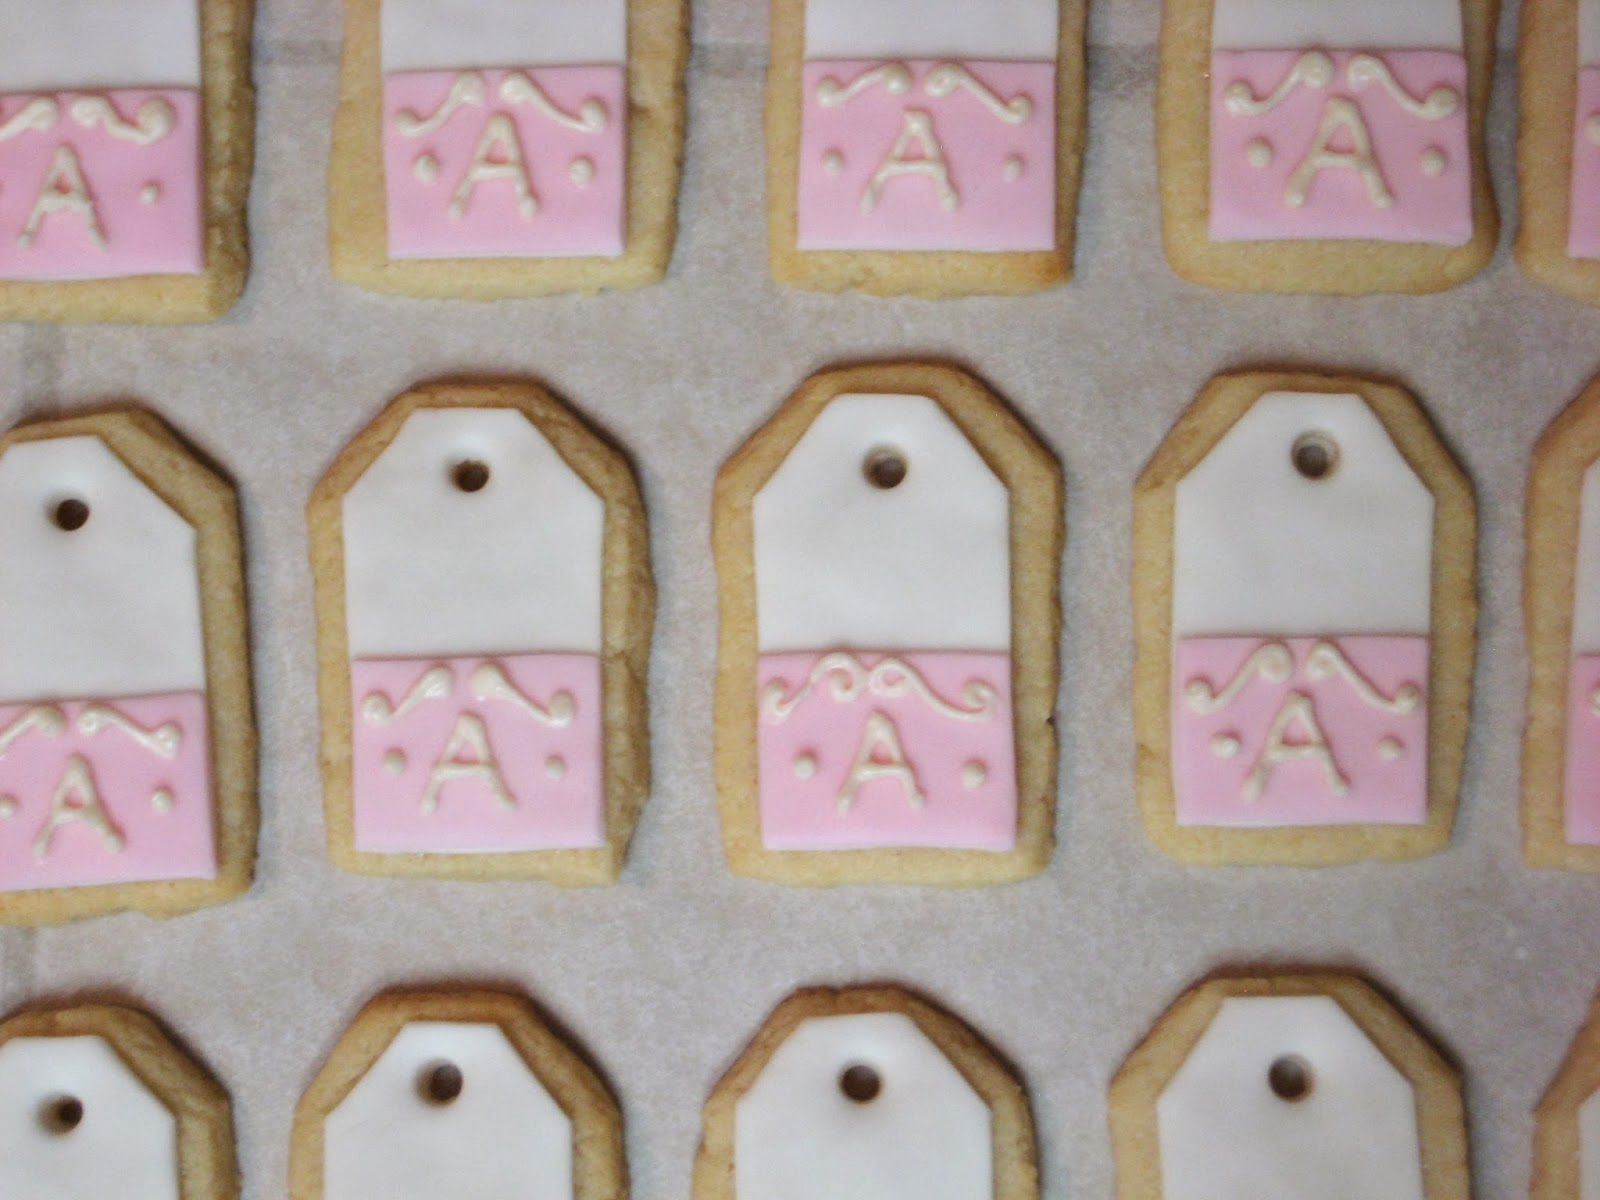 Shabby Chic Baby Shower Pink Teabag Cookies - Close-Up Overhead View